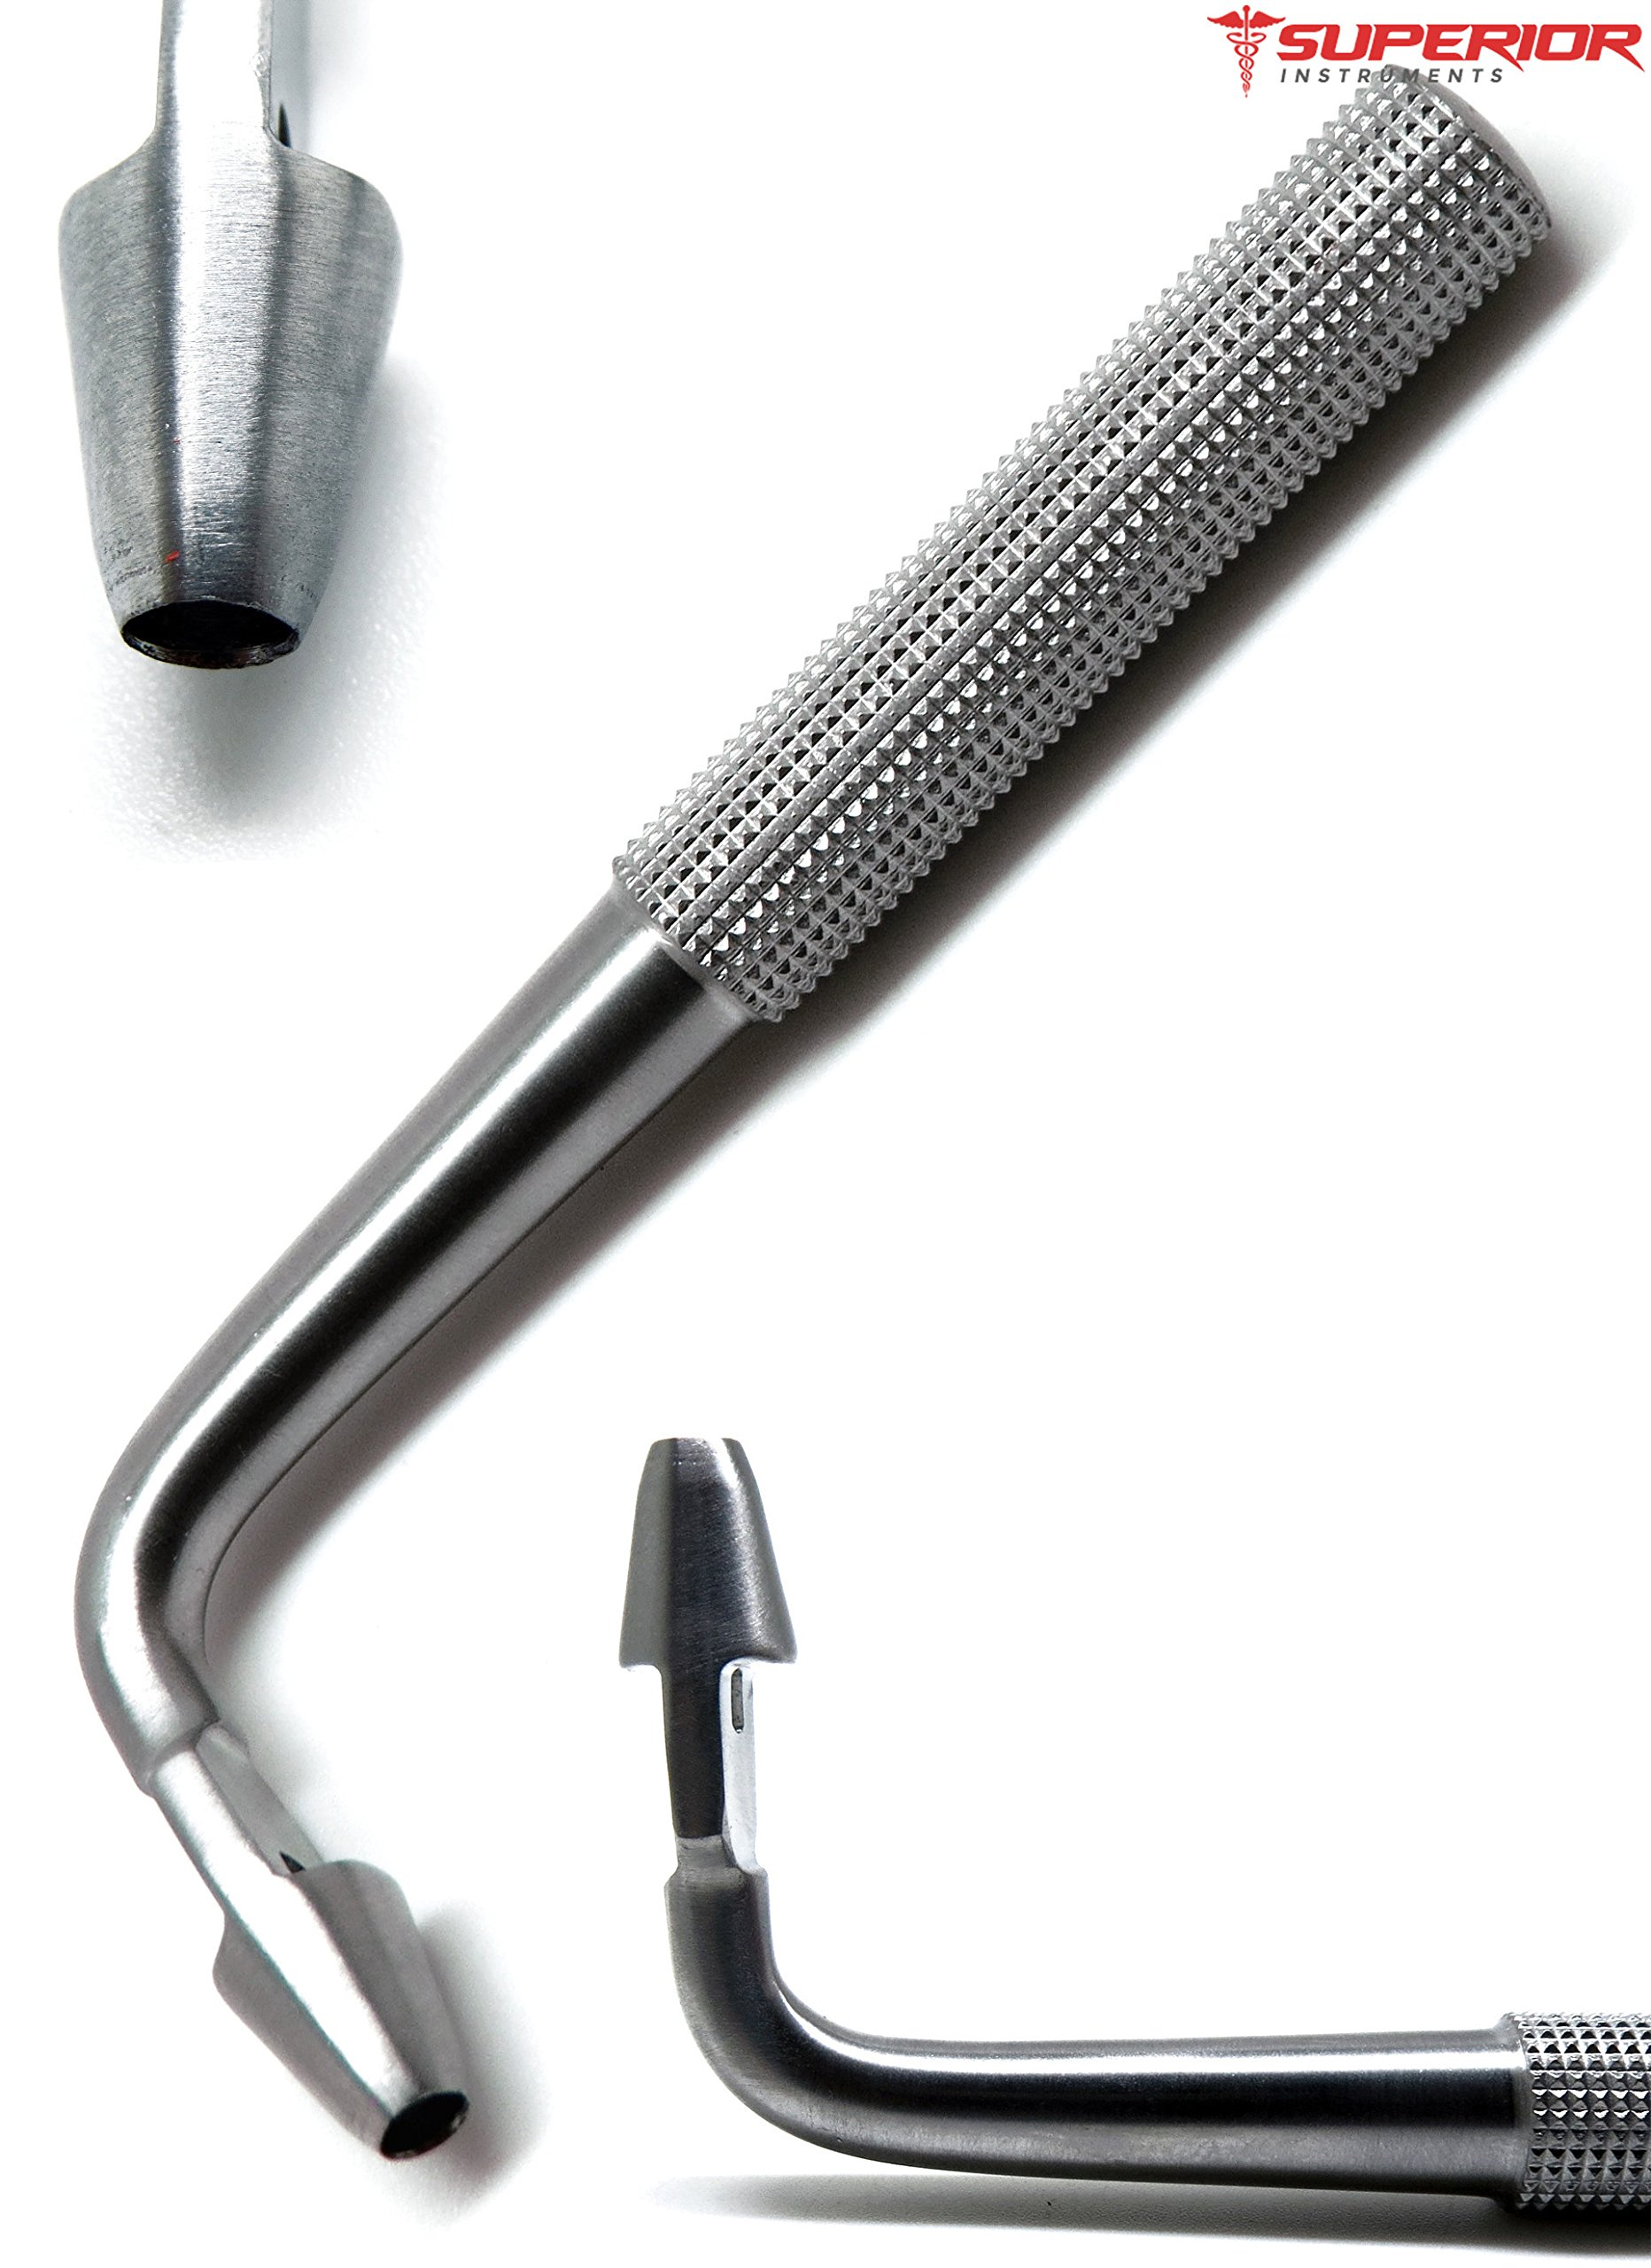 Tissue Punch 4mm Angled/Offset/Curved Dental Implant Superior Stainless Steel Instruments by Superior (Image #1)